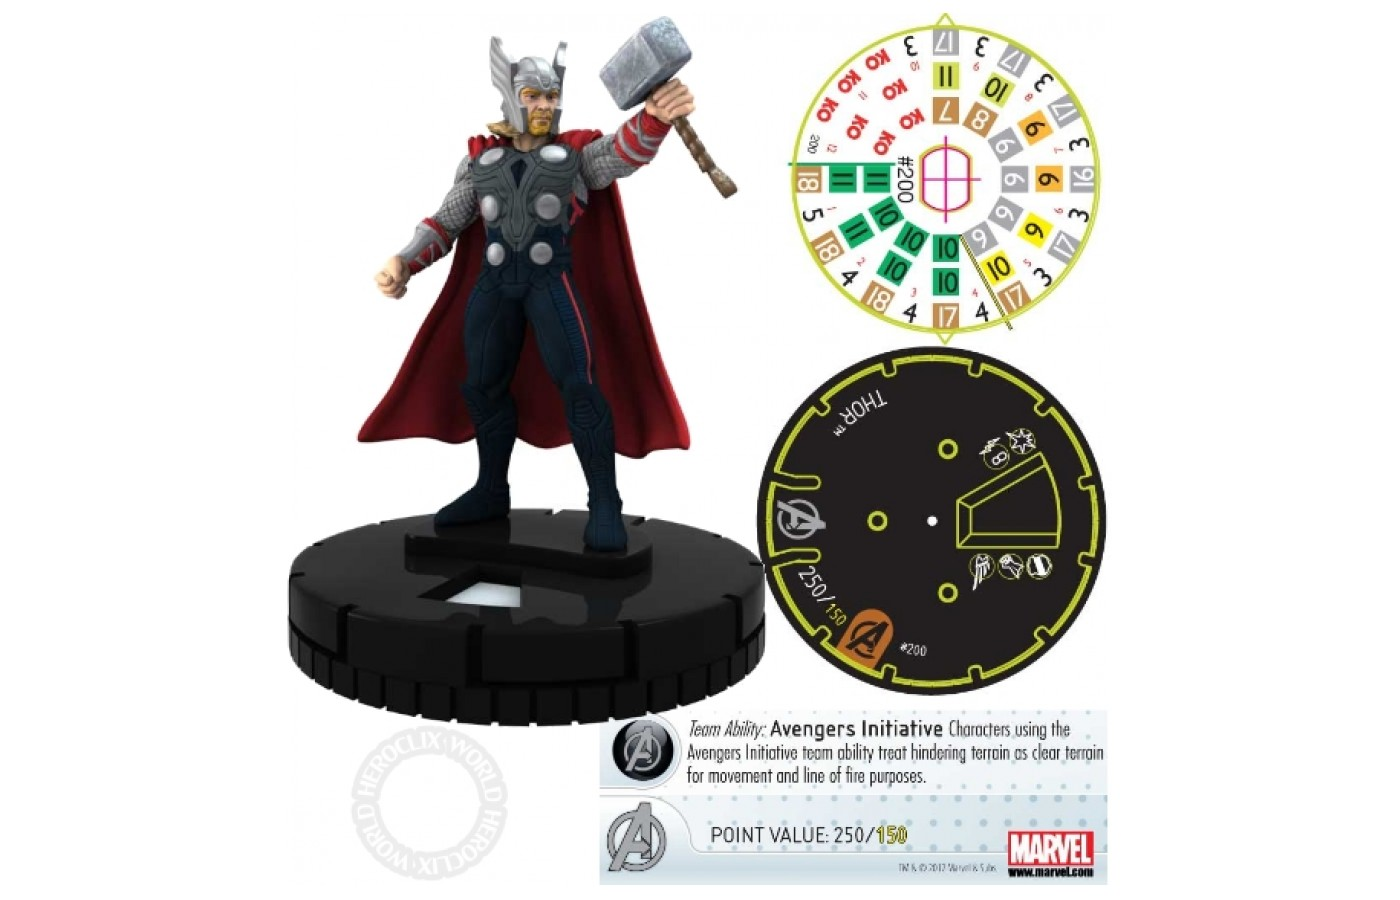 Each character has a specialized dial talored to its power set and experience level.